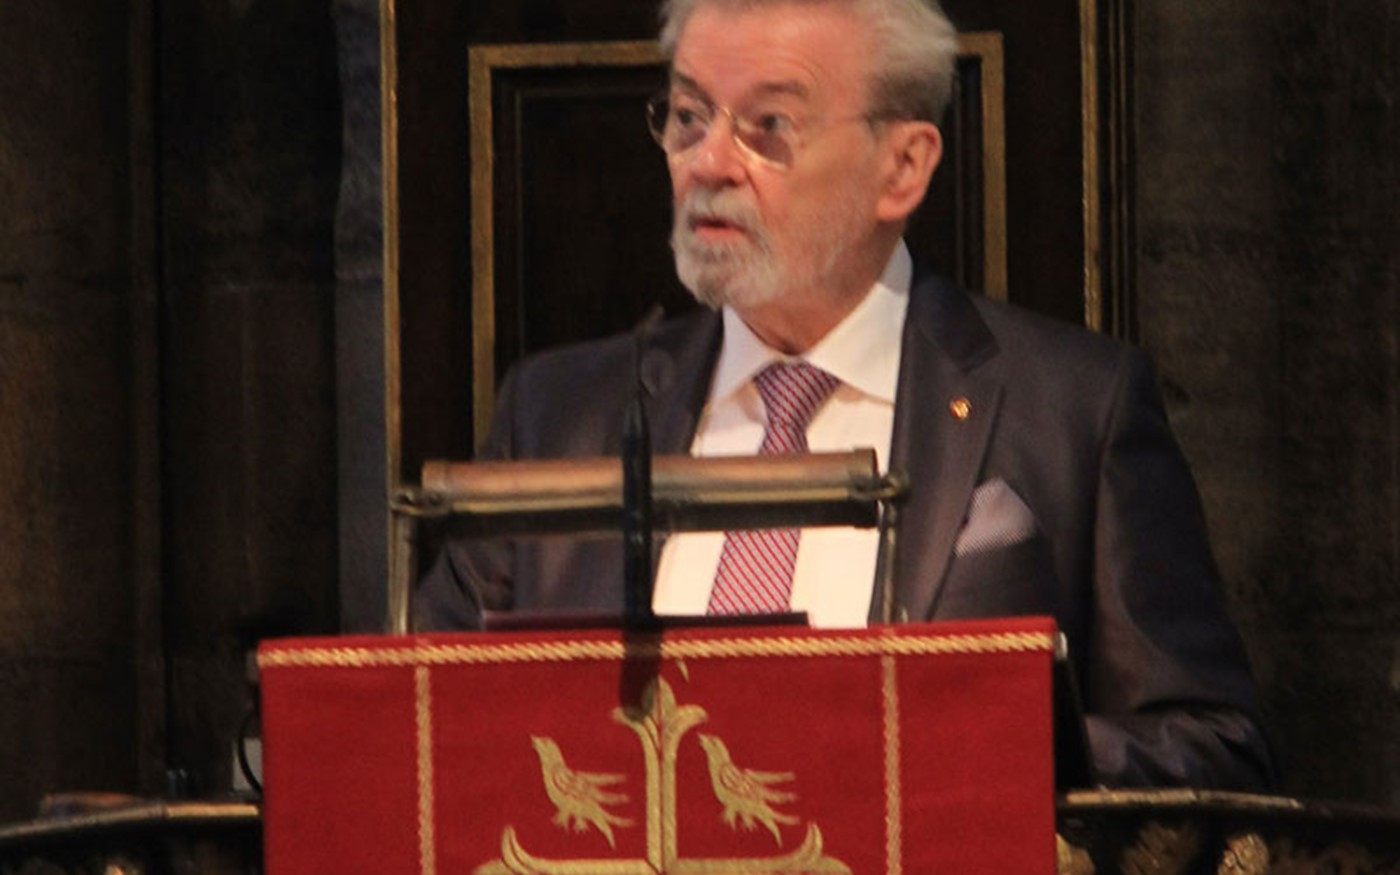 Sir James Galway OBE gives The Address